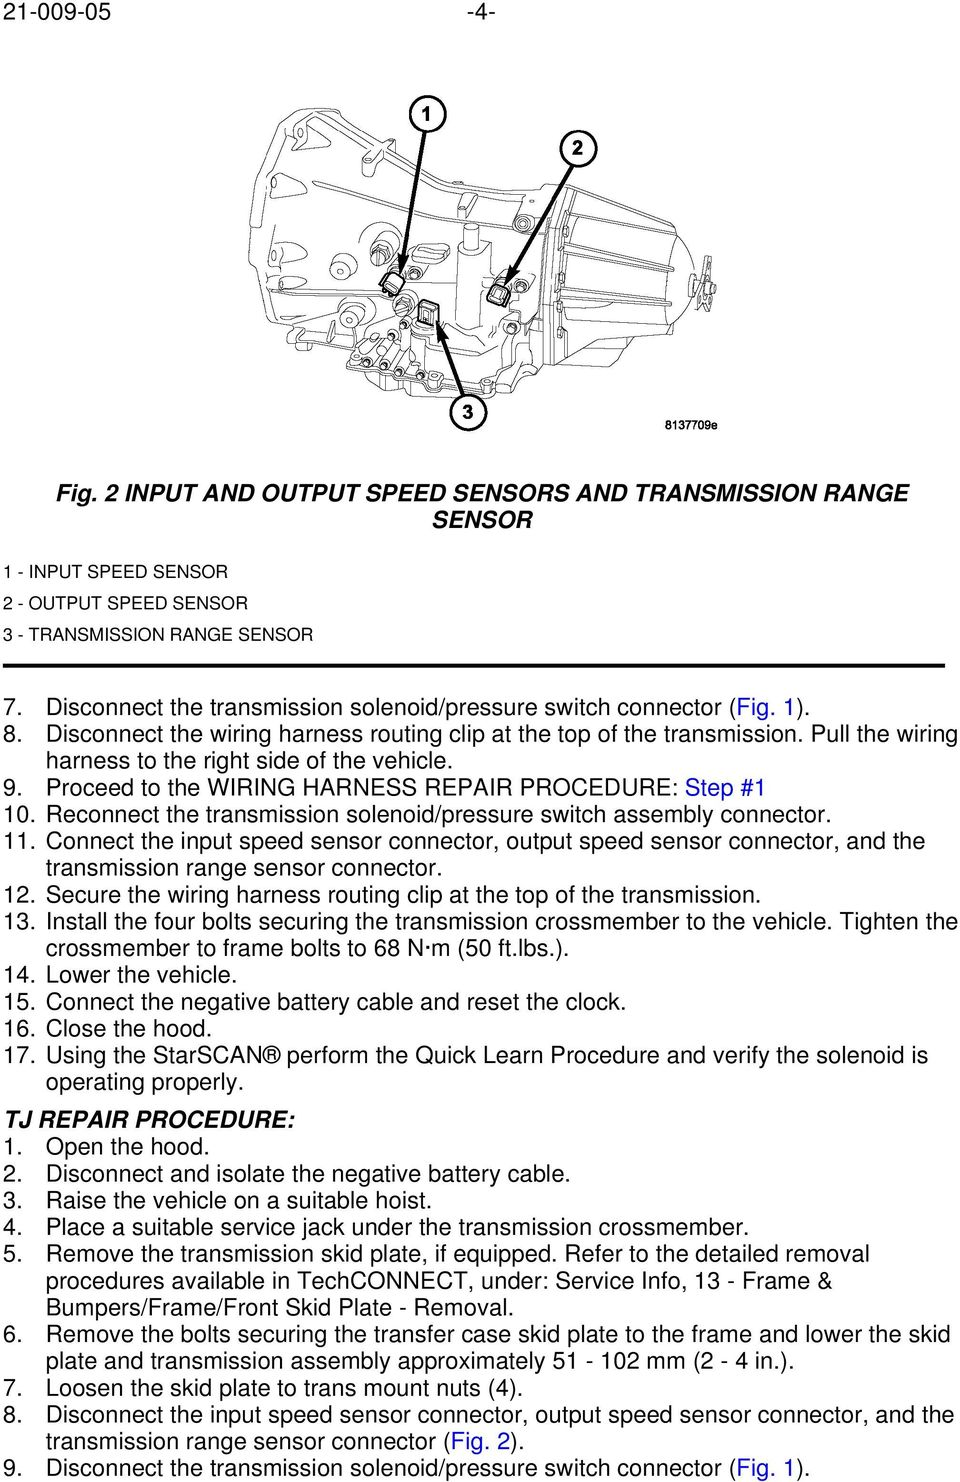 Subject Mil Illumination For Dtcs P0750 P0755 P0760 P0765 Trailer Wiring Harness Installation 2004 Mitsubishi Montero Pull The To Right Side Of Vehicle 9 Proceed